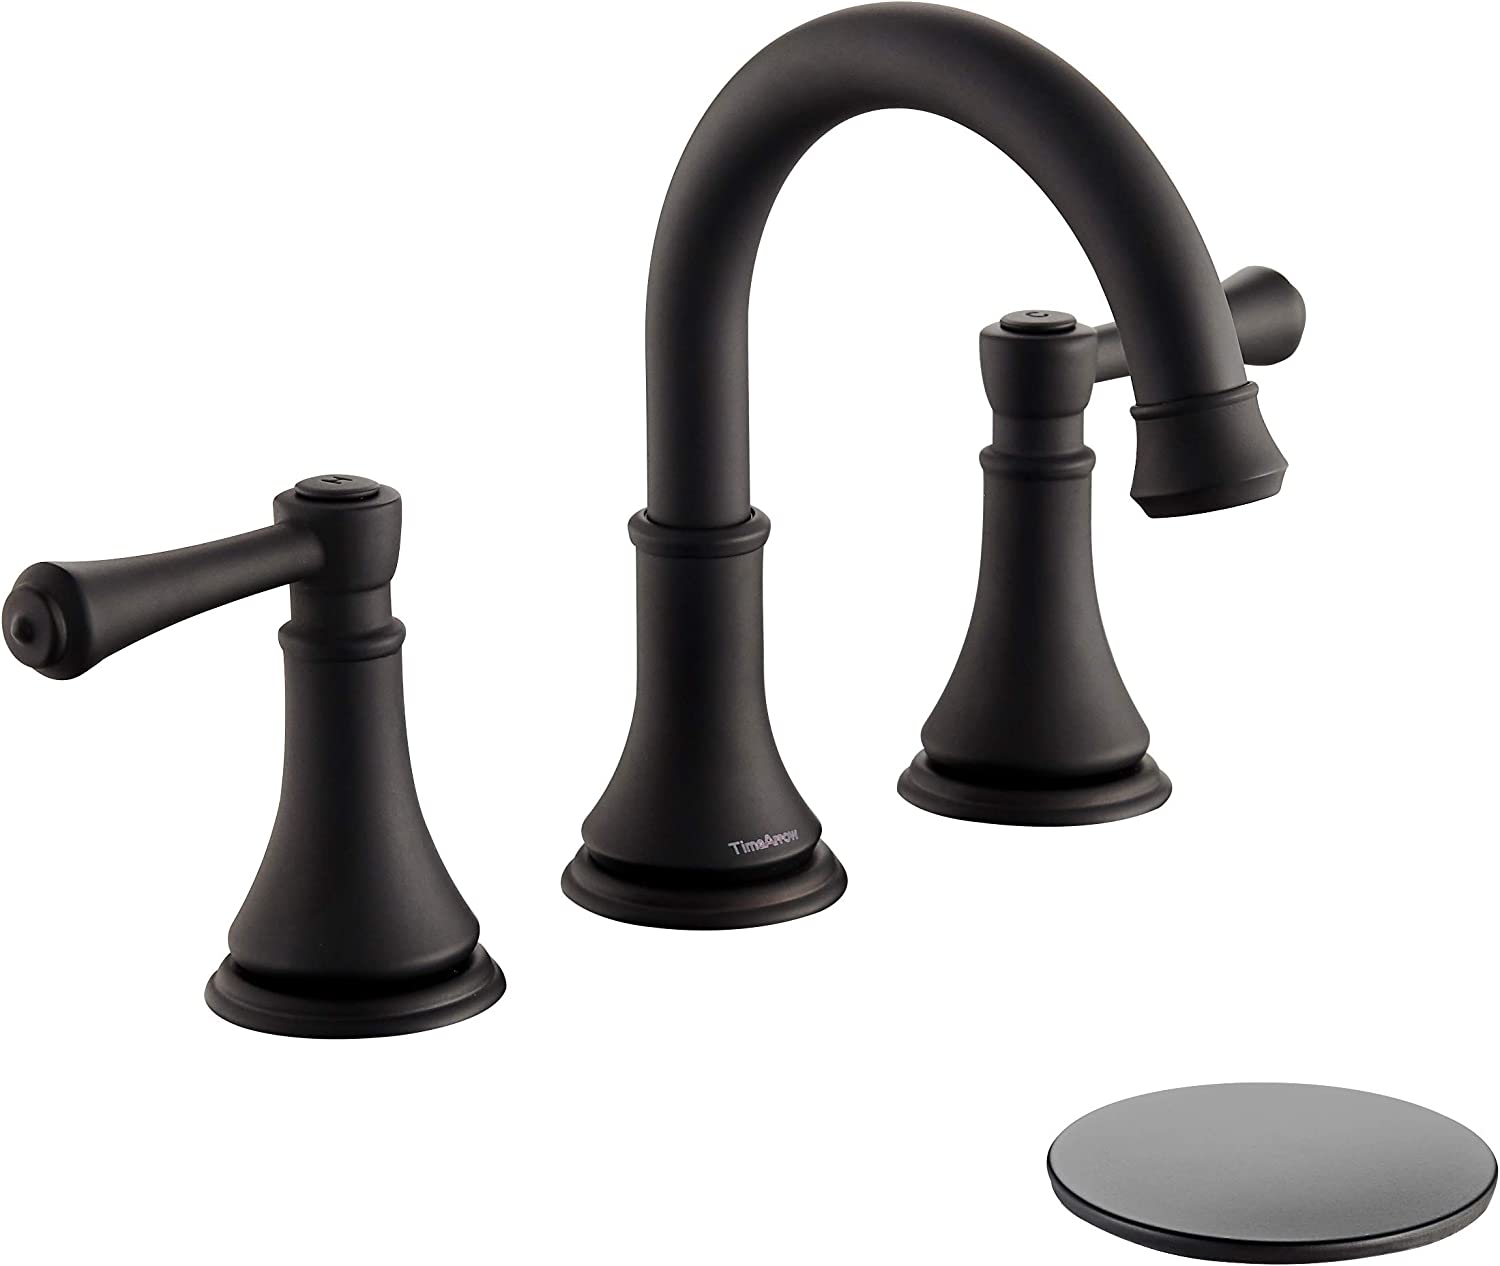 TimeArrow TAF830Y-MB 2 Handle 8 inch Widespread Bathroom Sink Faucet with Pop-Up Drain, Matte Black